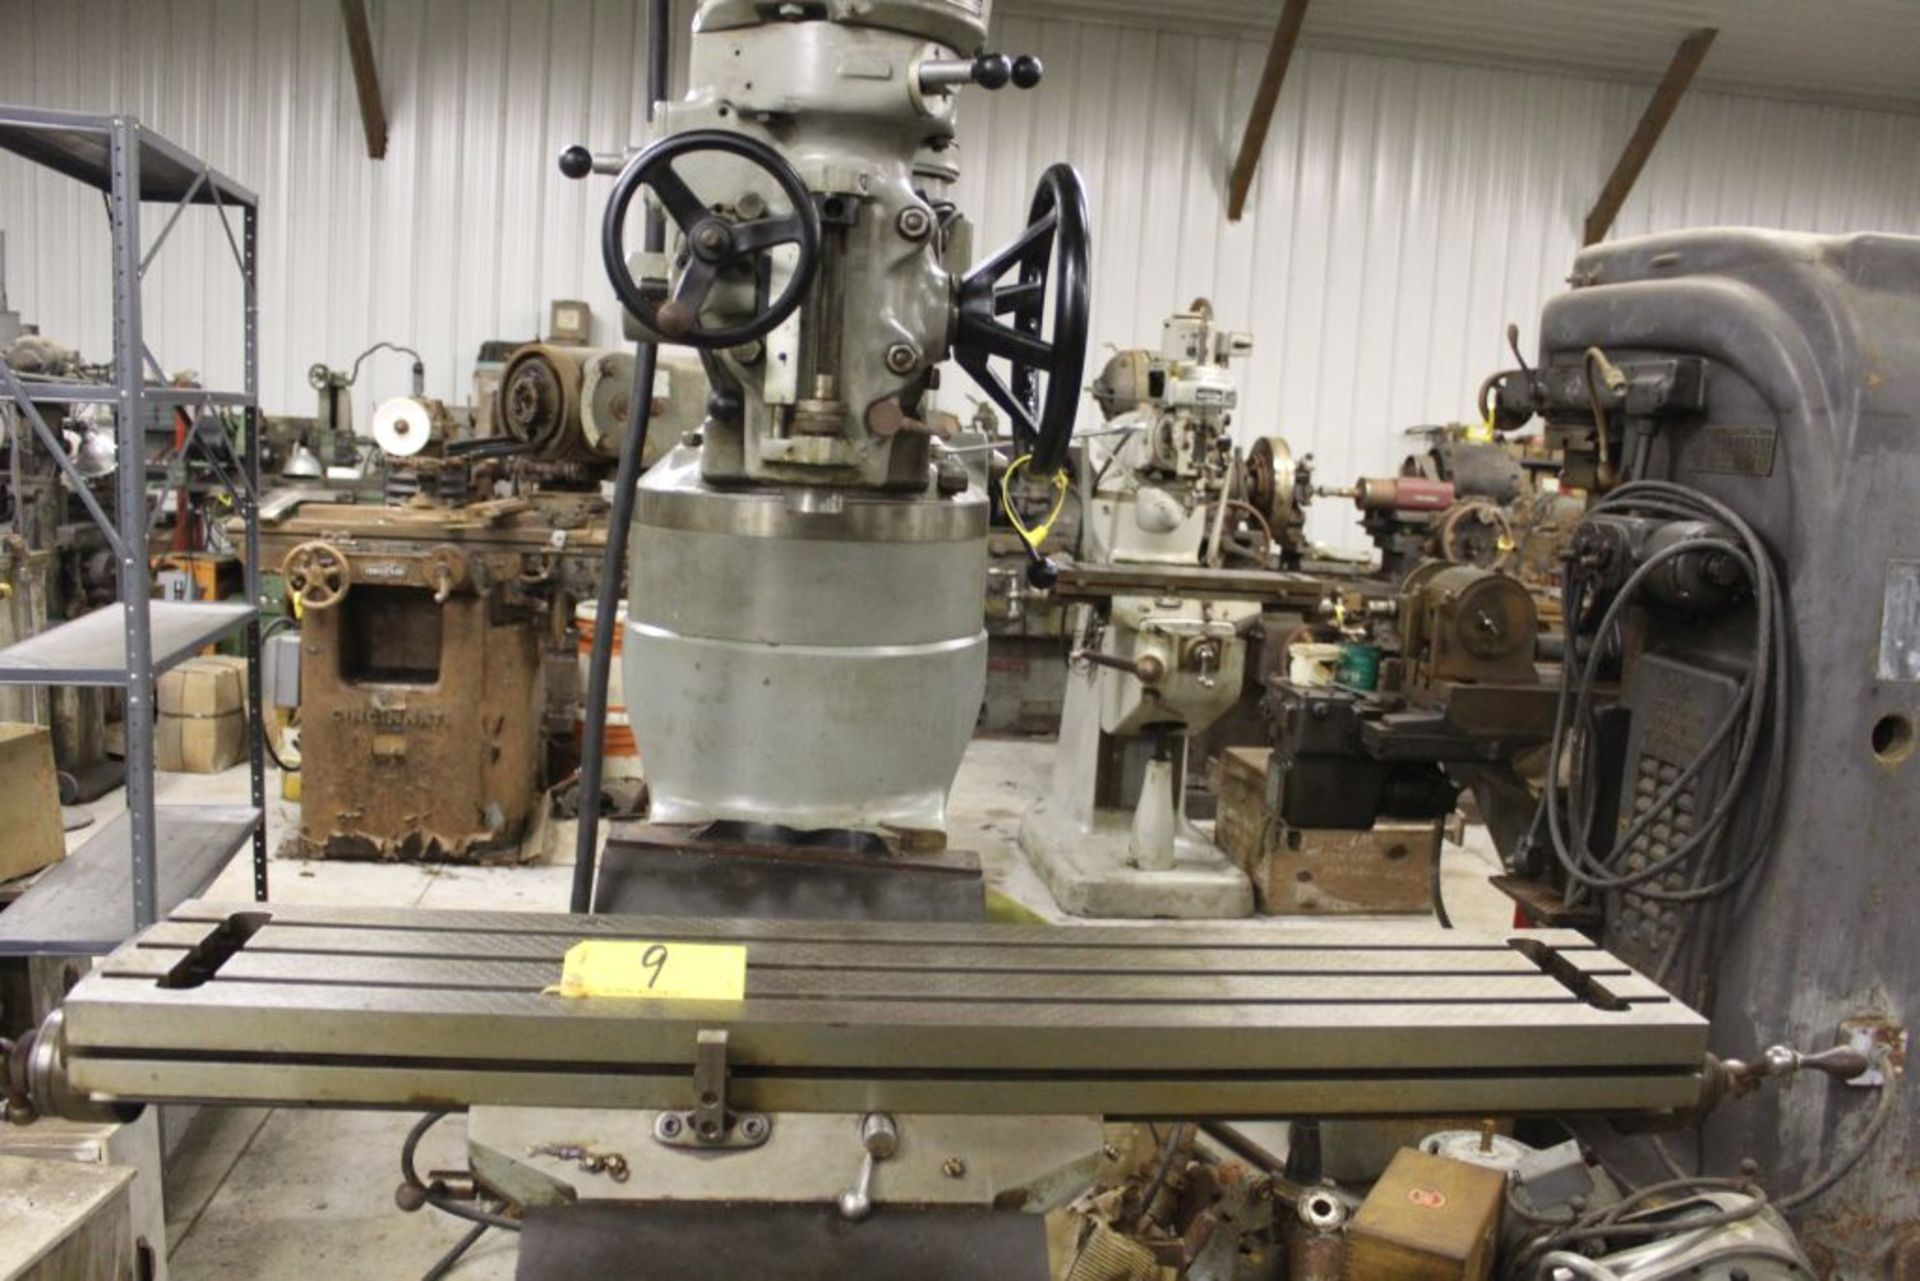 """Bridgeport mill, model 12-BR, sn 83978, 9"""" x 48"""" bed, manual (not down power), shaping attachment. - Image 9 of 15"""